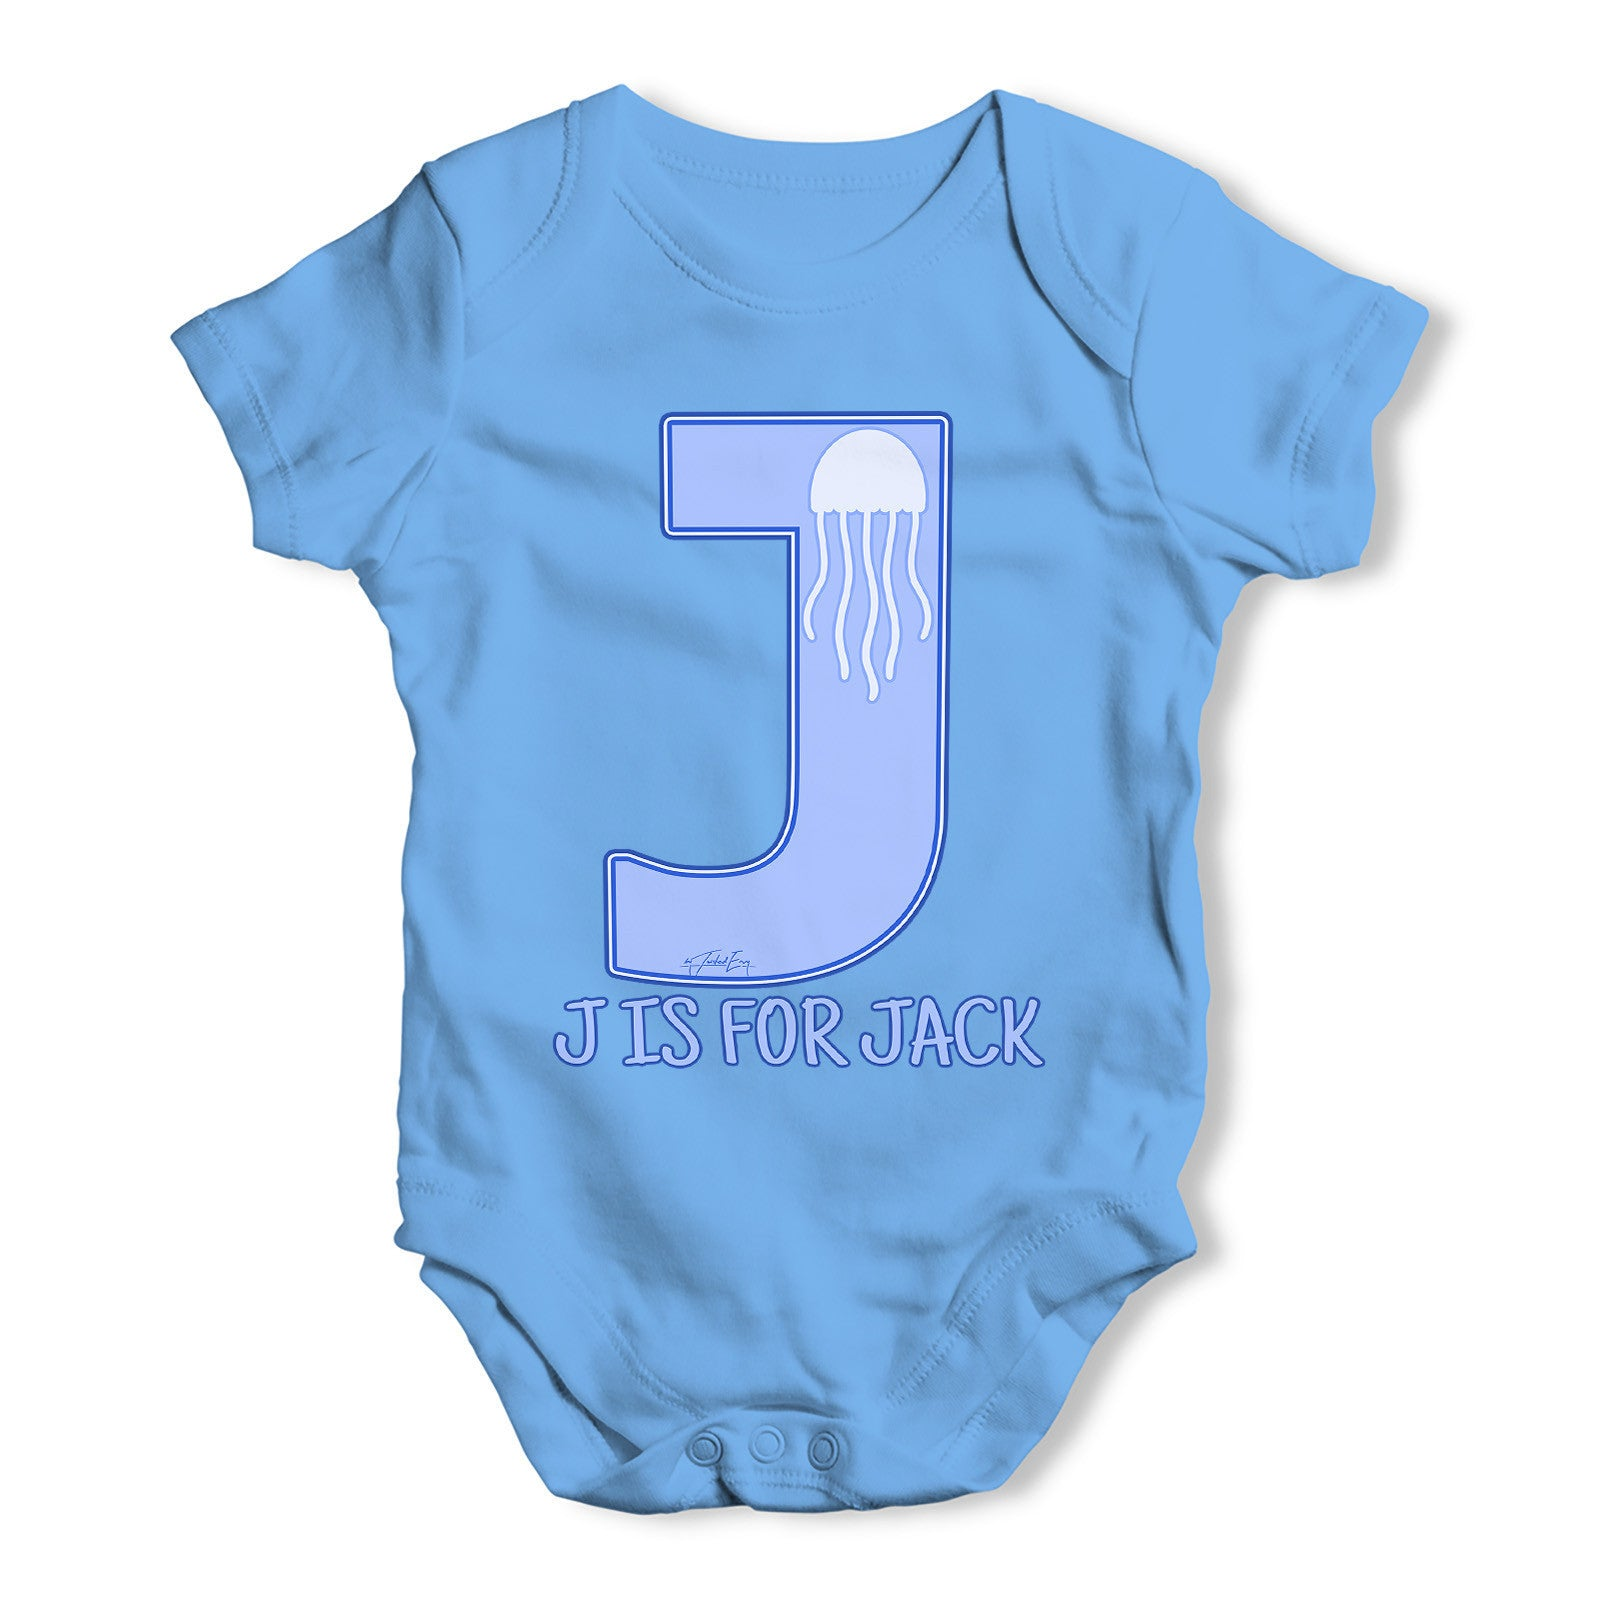 Baby Grow Slogan Novelty Body Suit Baby Name Personalise With Name